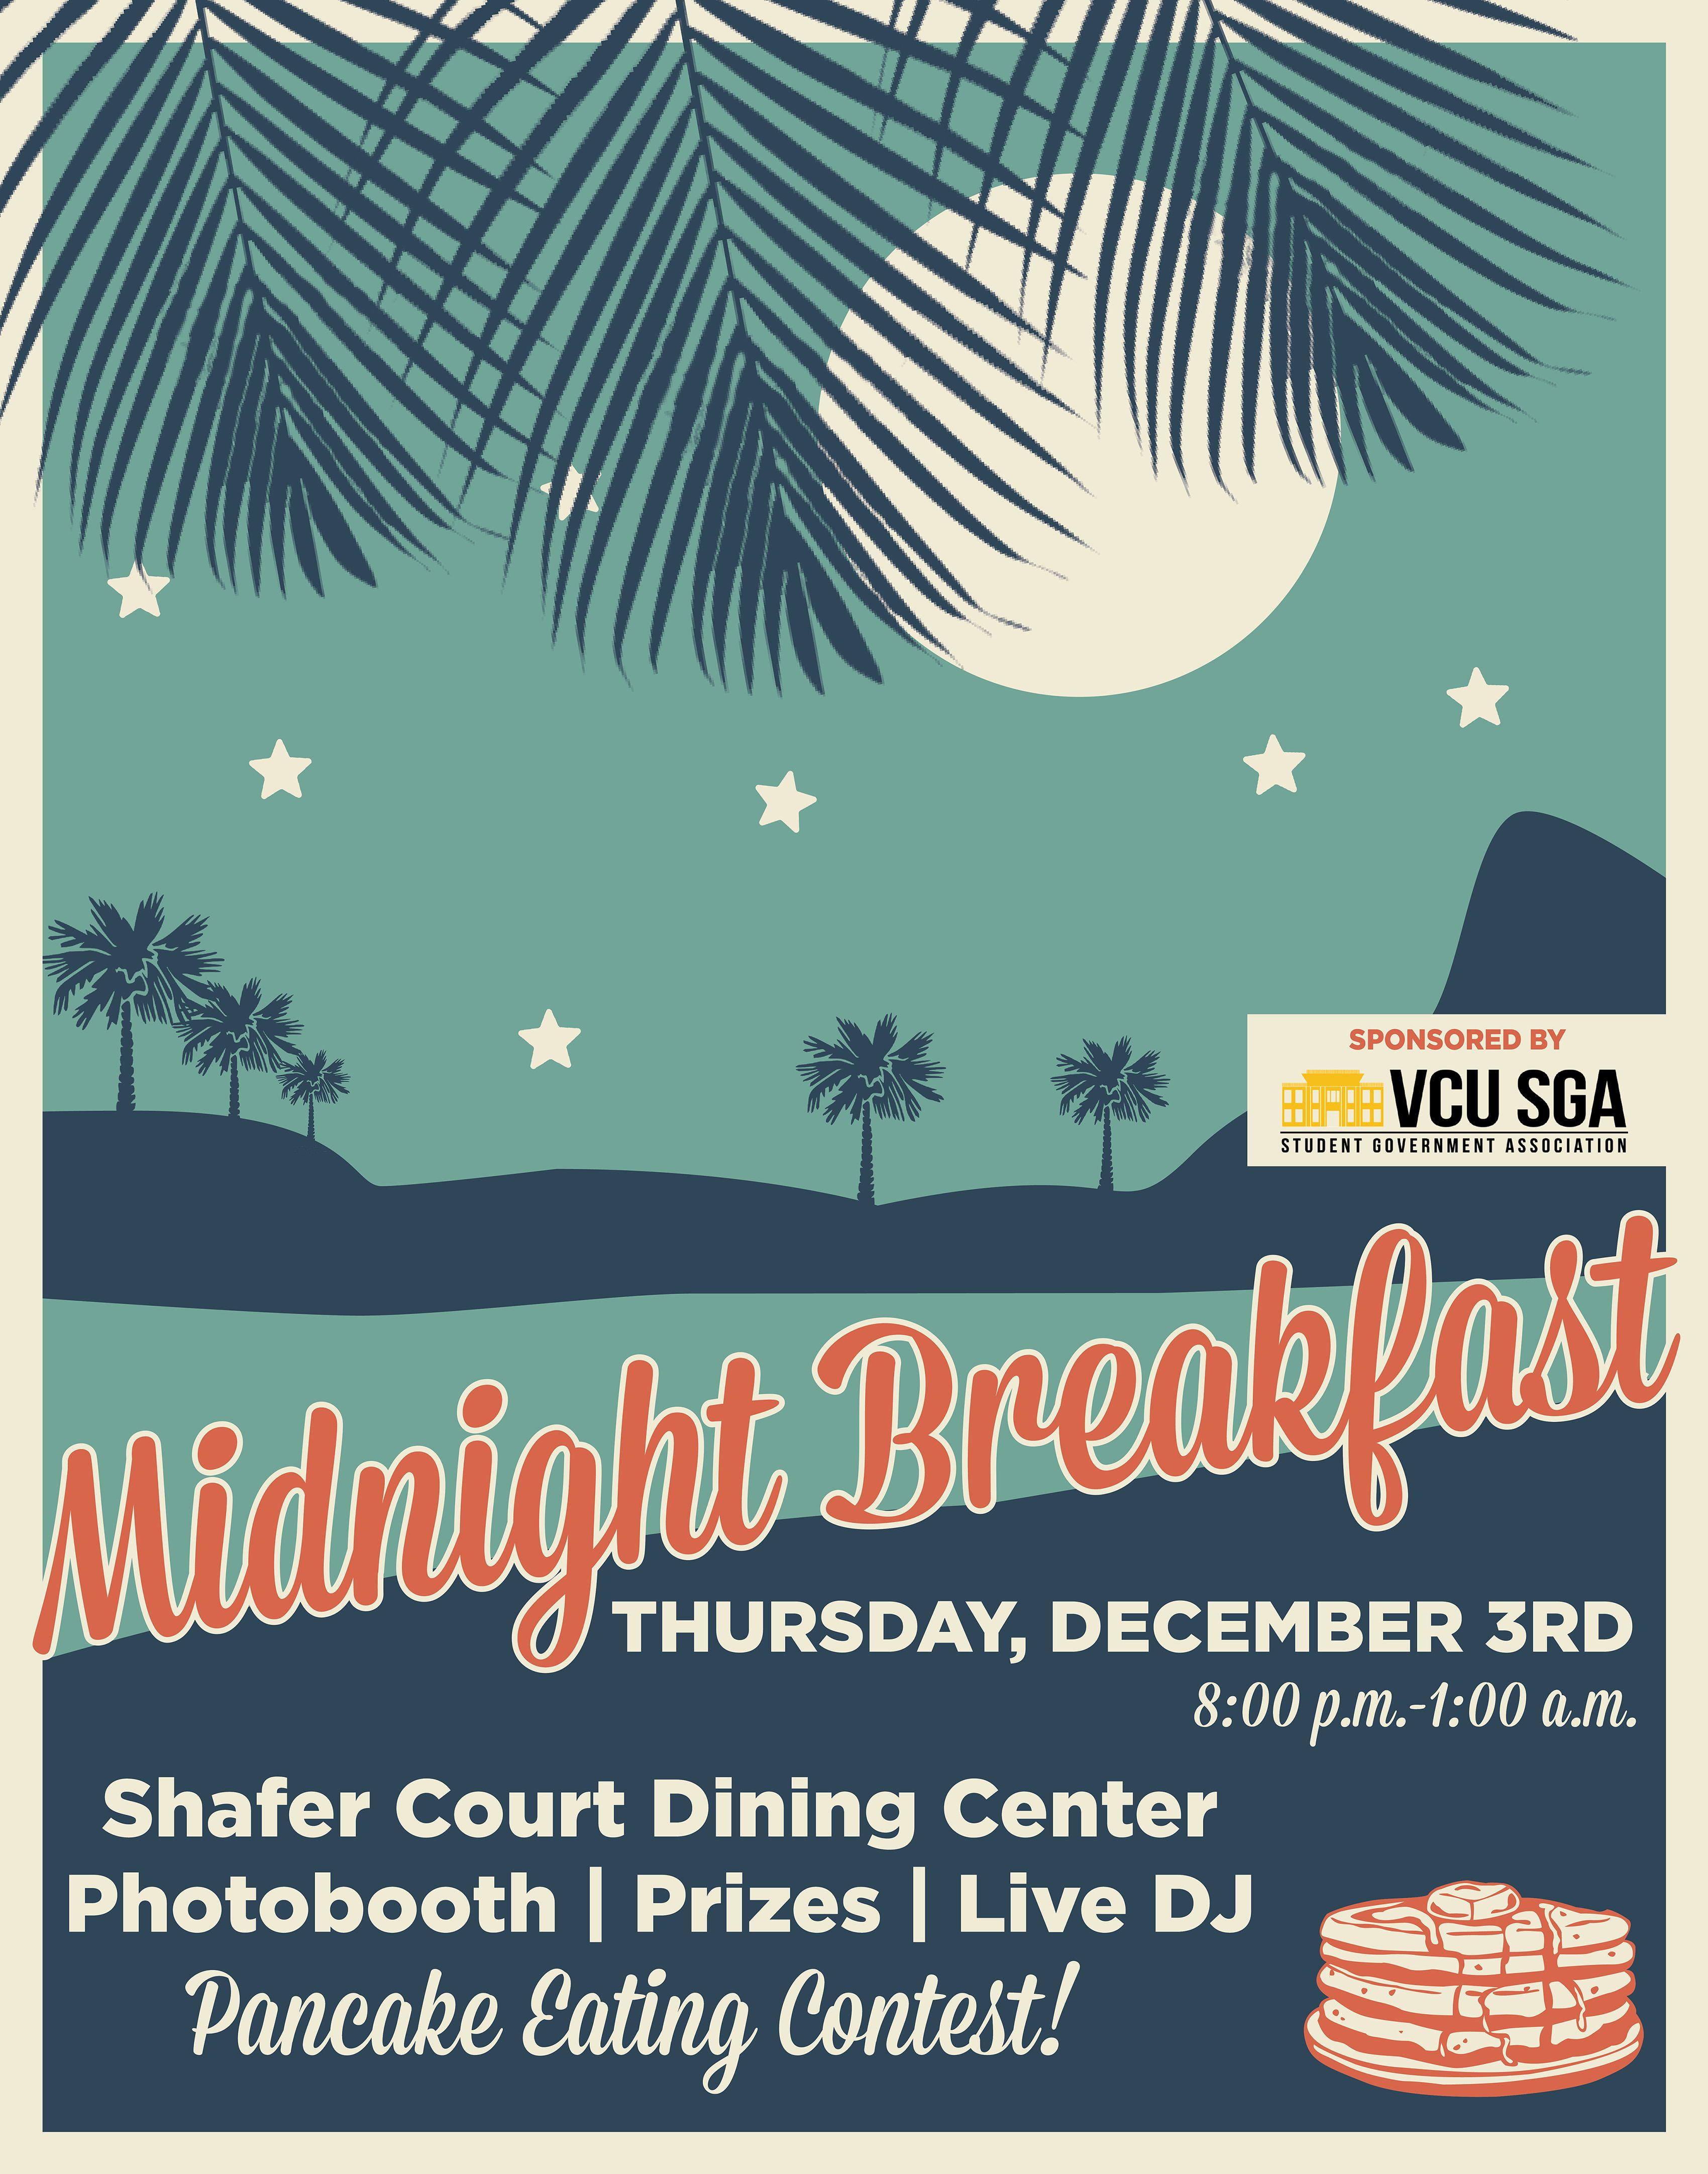 Midnight Breakfast Event Poster for VCU Dining Services | My ... for Creative Event Posters  173lyp